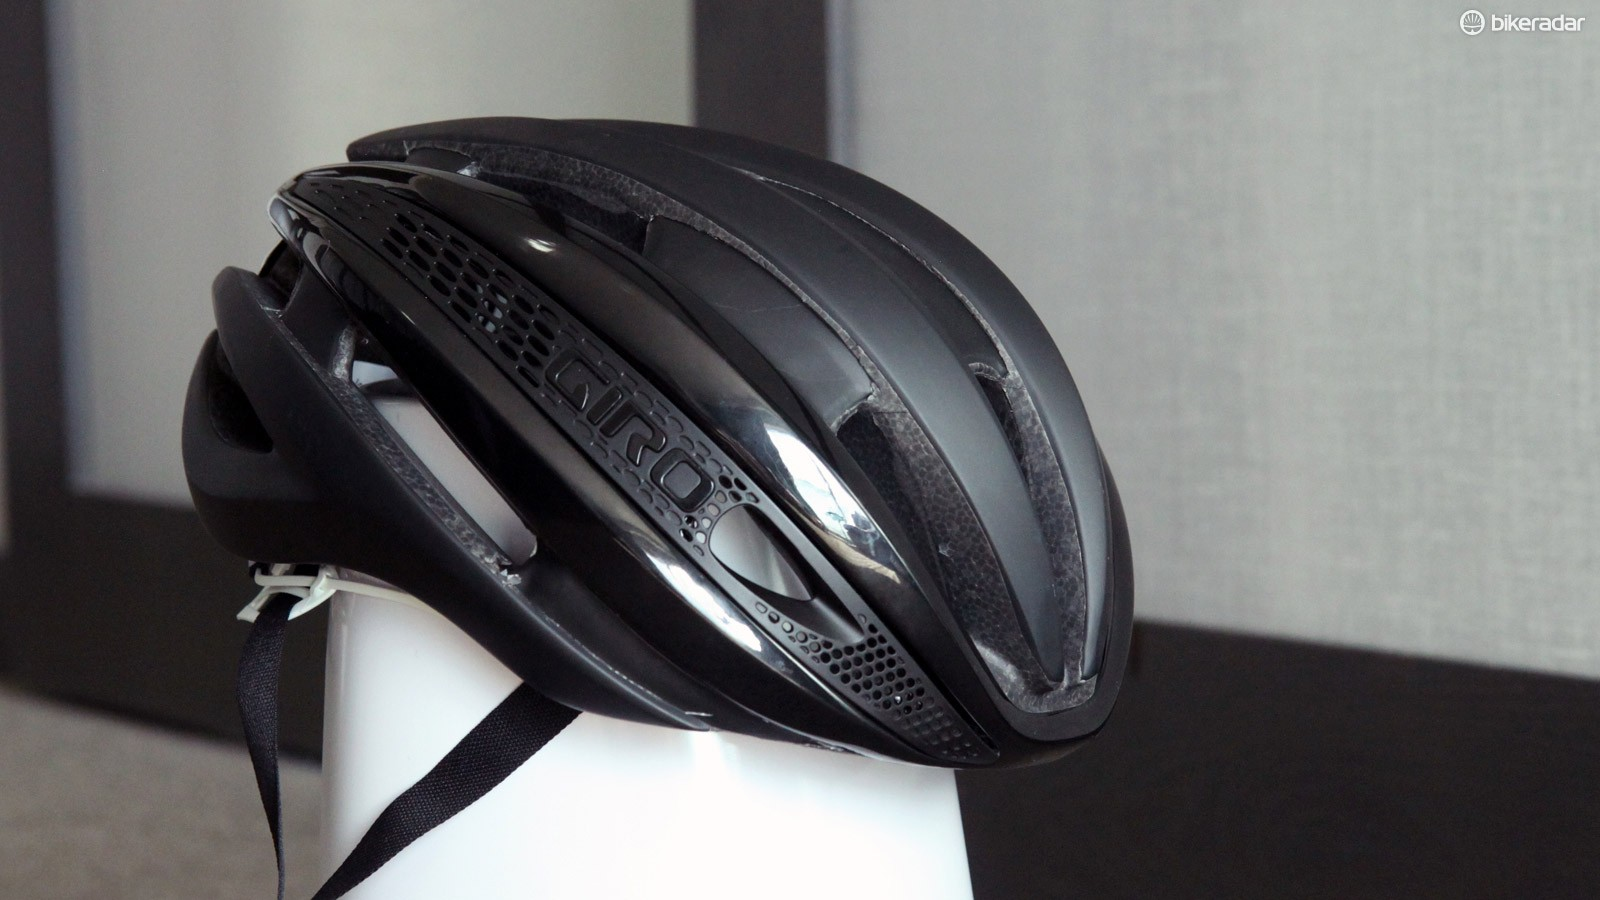 Giro Synthe aero road helmet launched